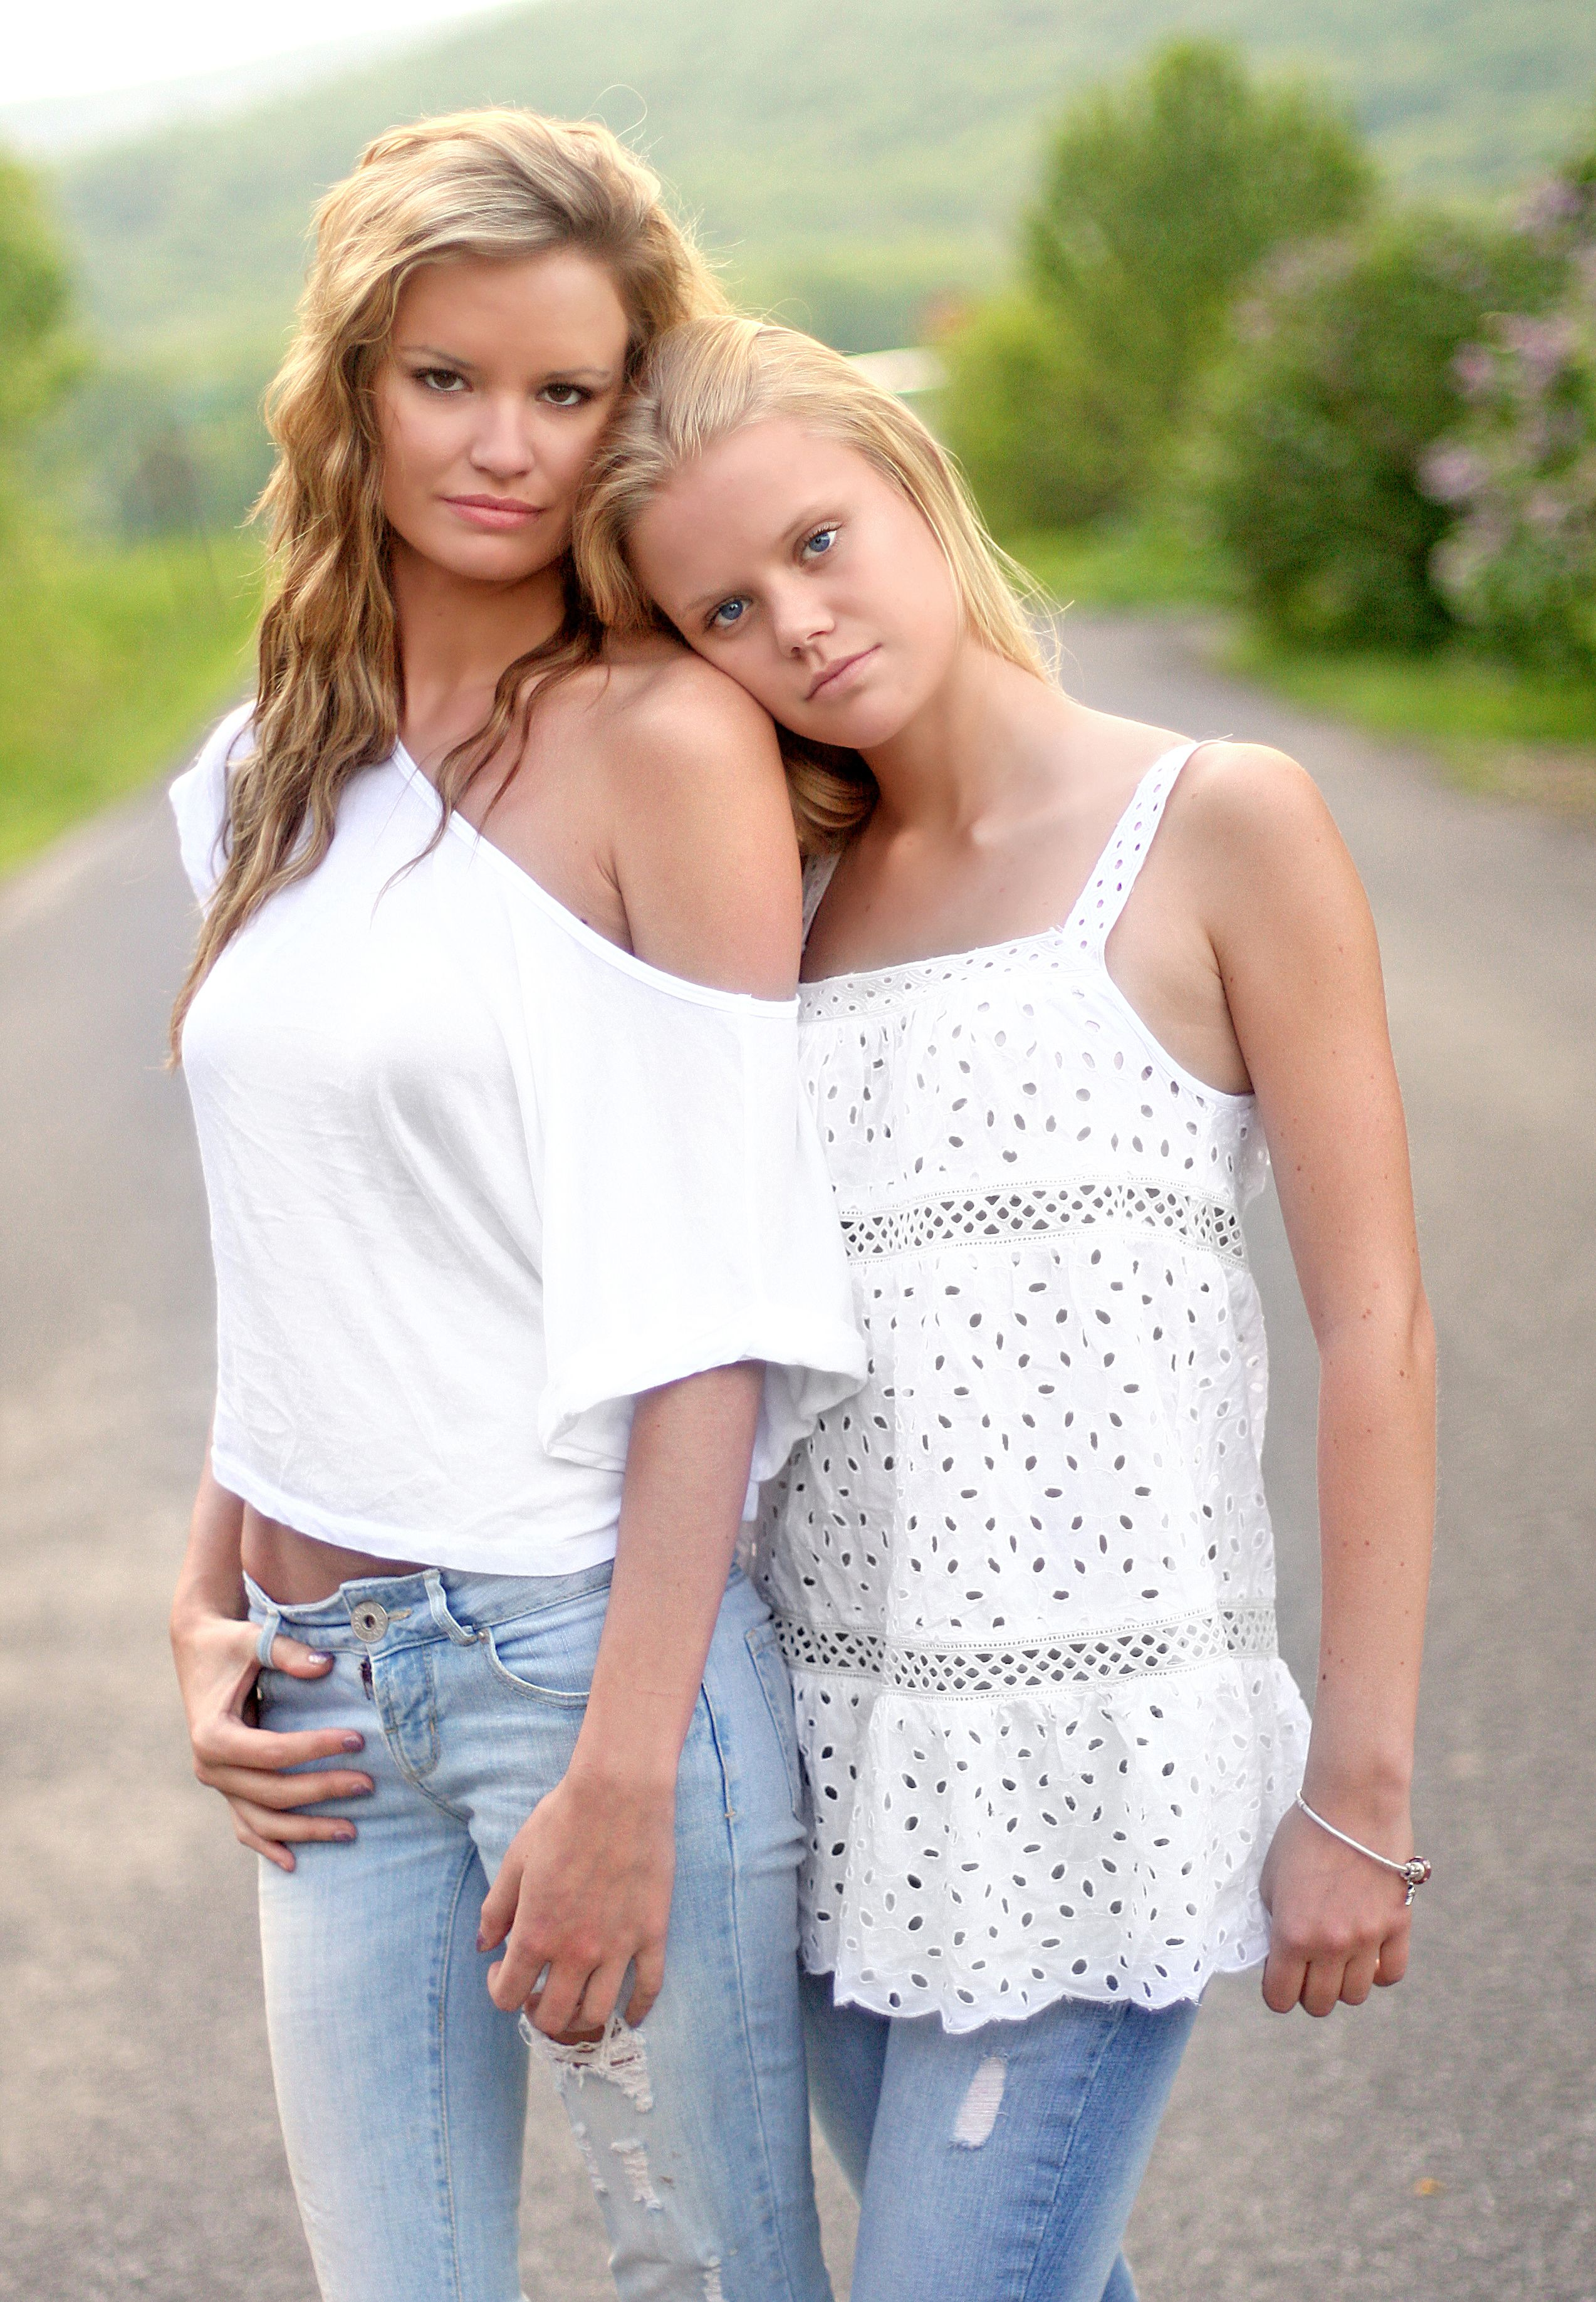 Protected Blog › Log in | Mother daughter pictures, Mother